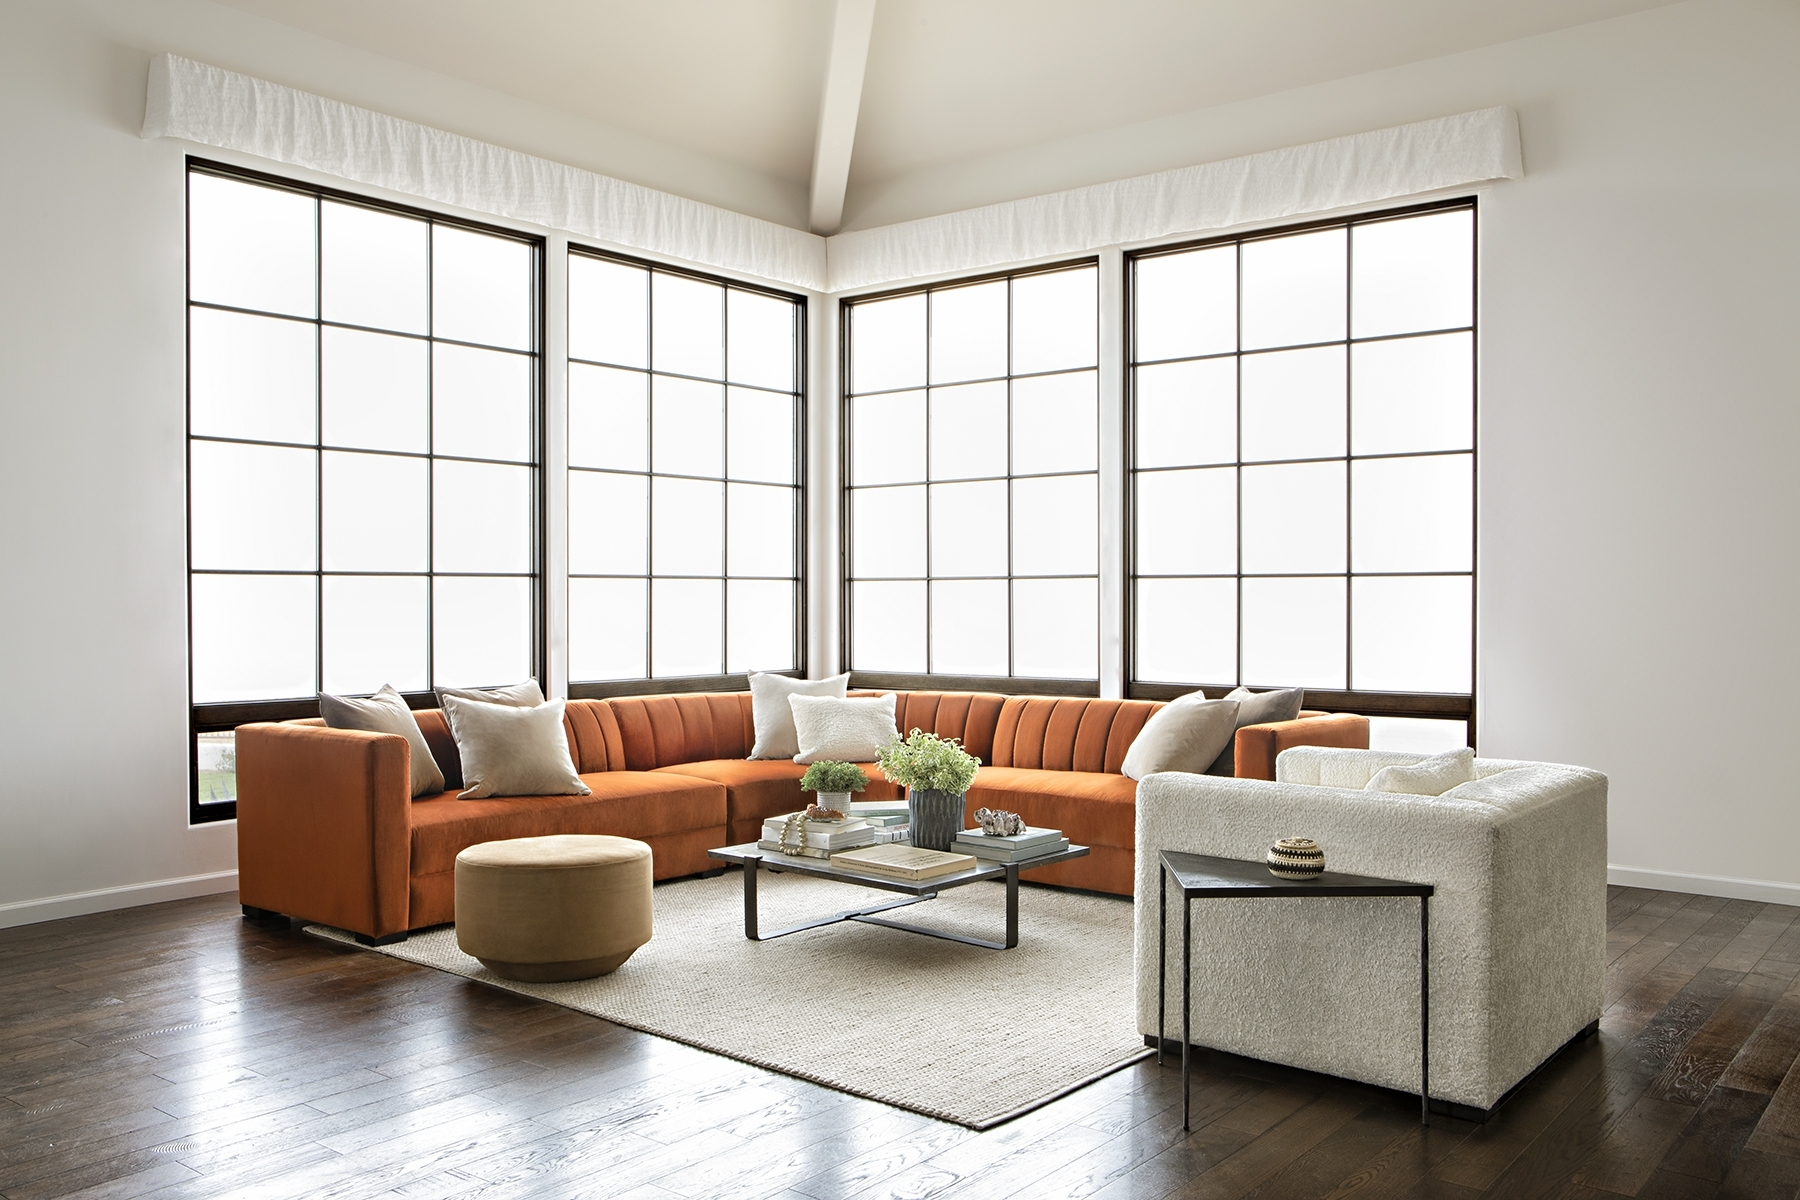 Nate Berkus & Jeremiah Brent's Newest Affordable Collection | Rue intended for Whitley 3 Piece Sectionals by Nate Berkus and Jeremiah Brent